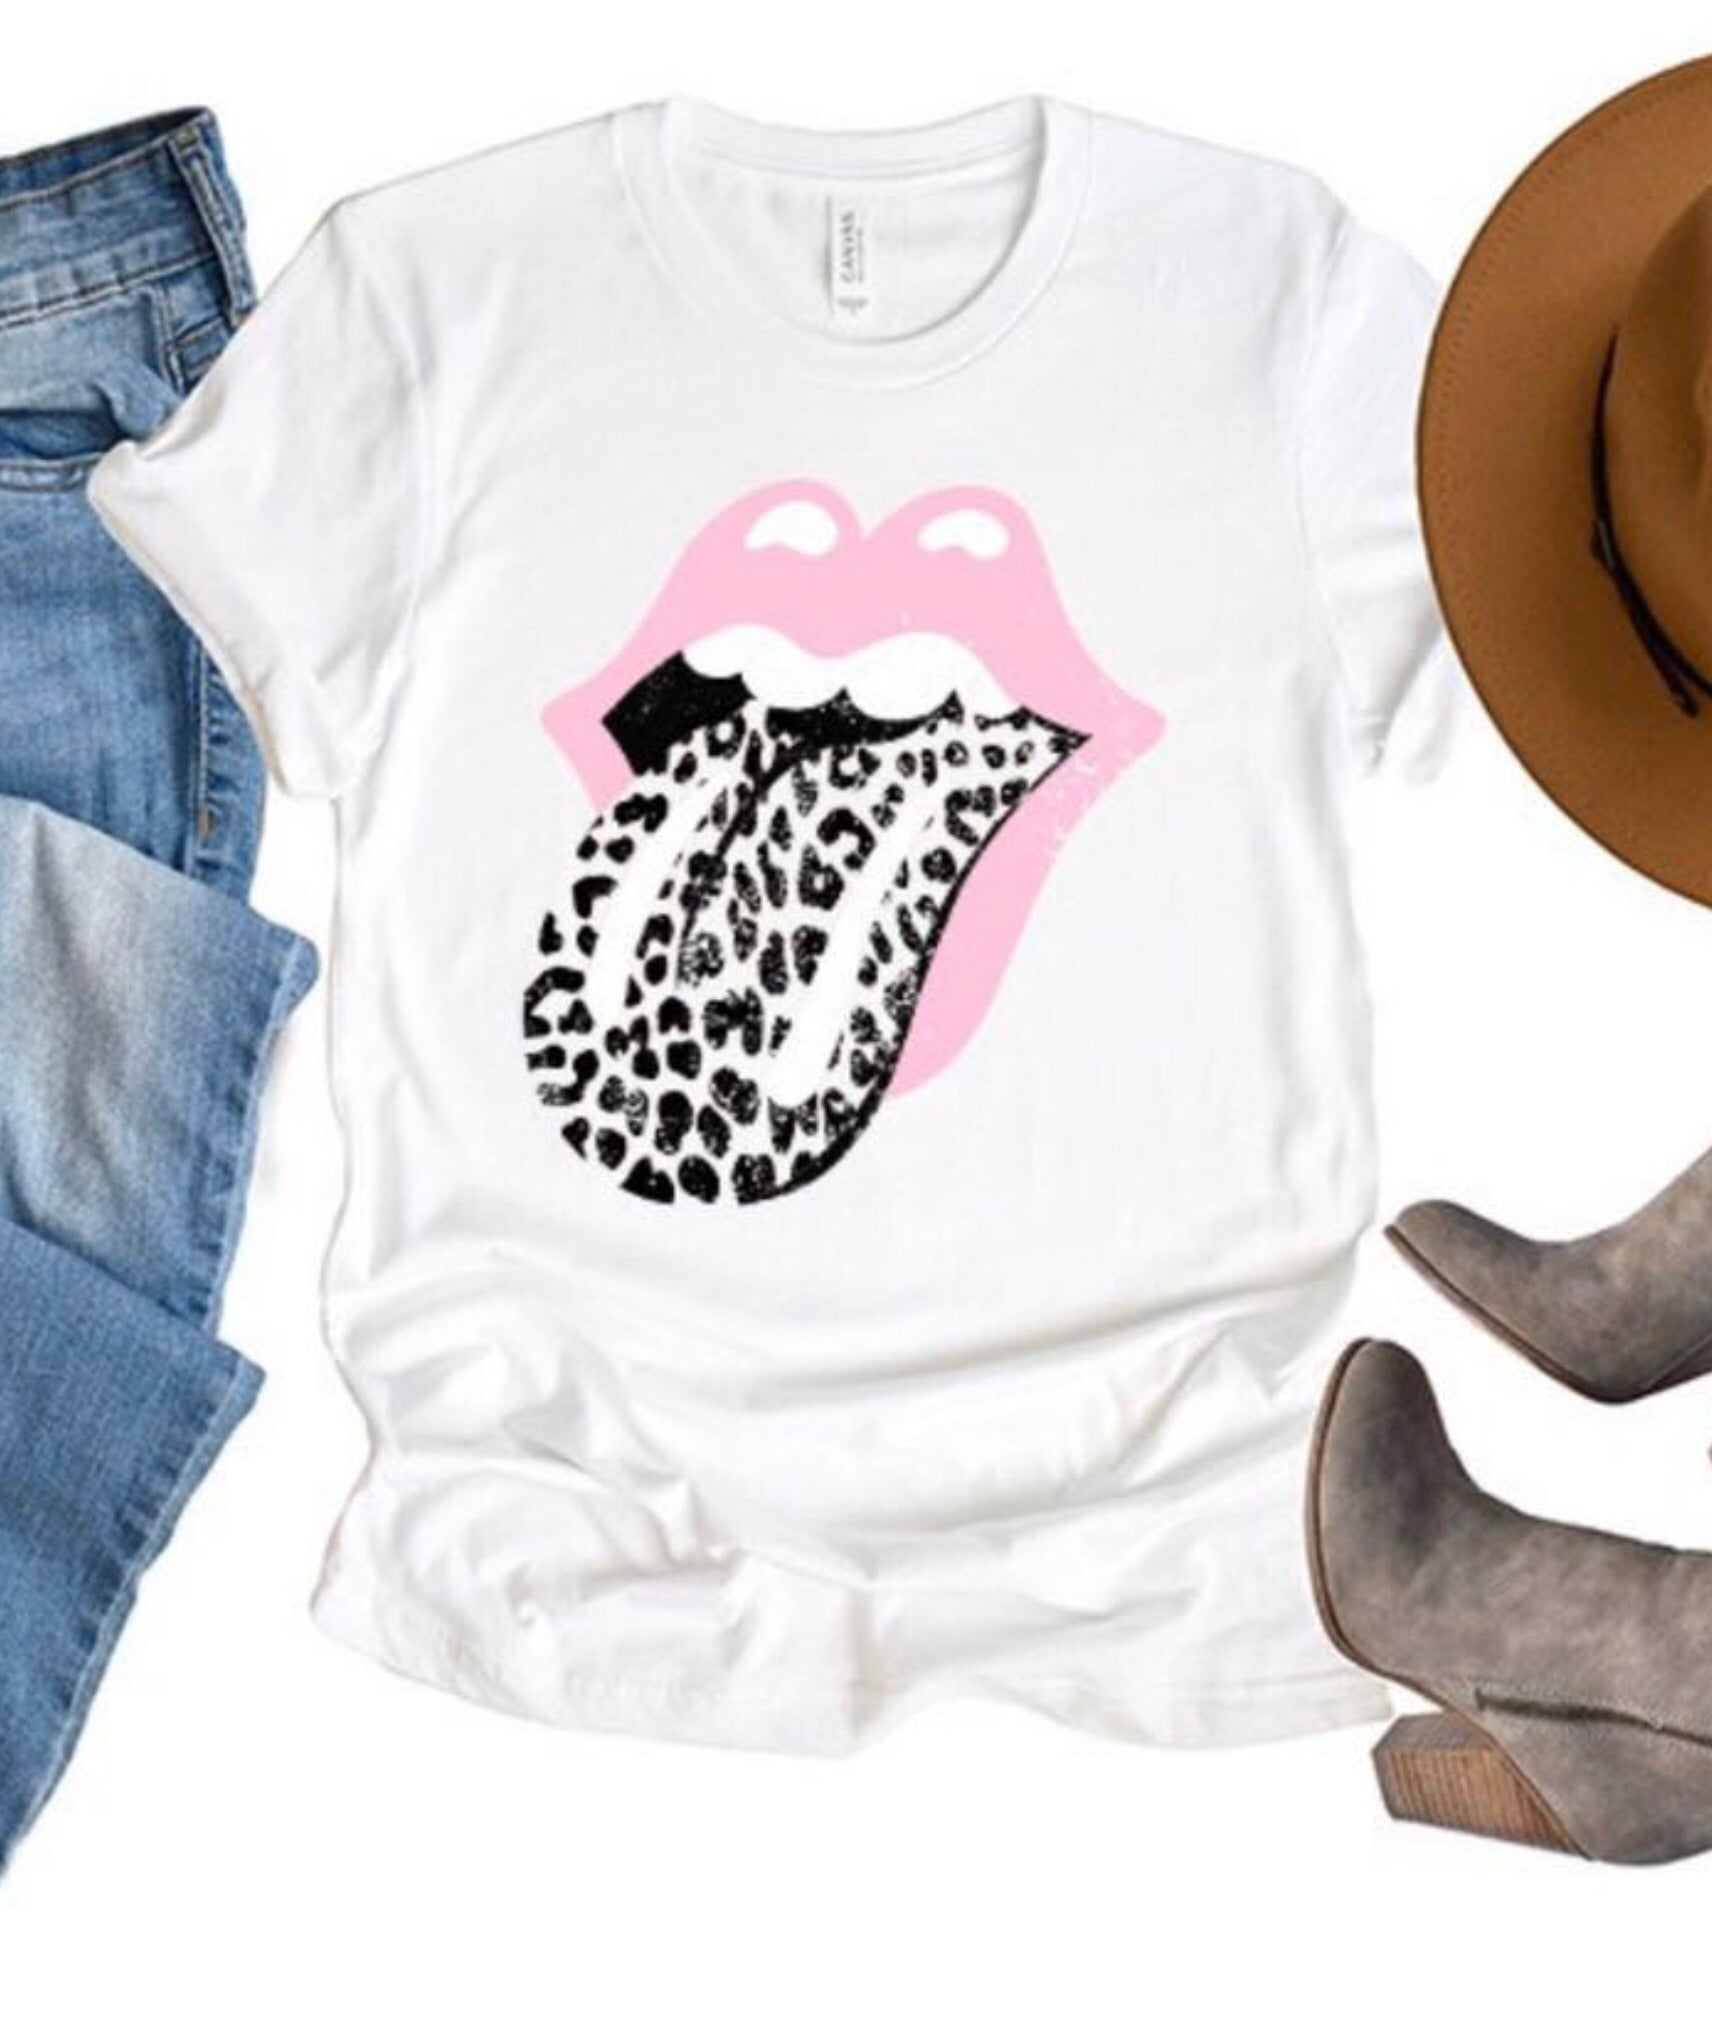 White With Pink and Leopard Rolling Stone Graphic Tee